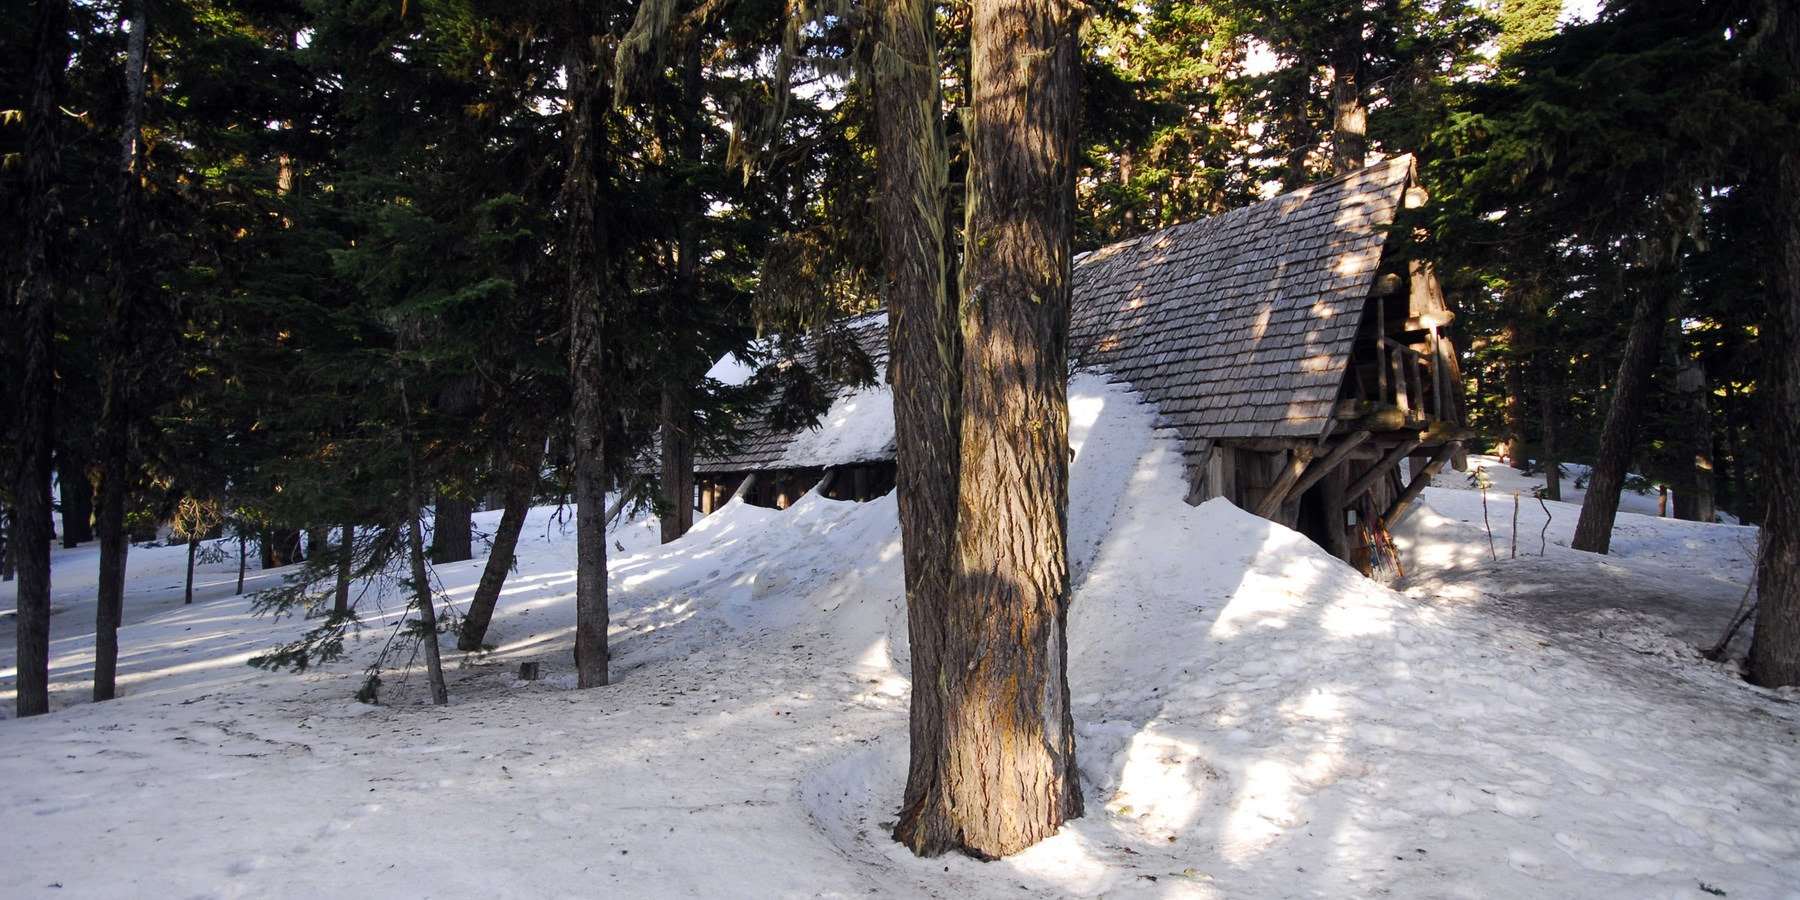 12 Reasons to Visit Mount Hood in the Winter - Outdoor Project